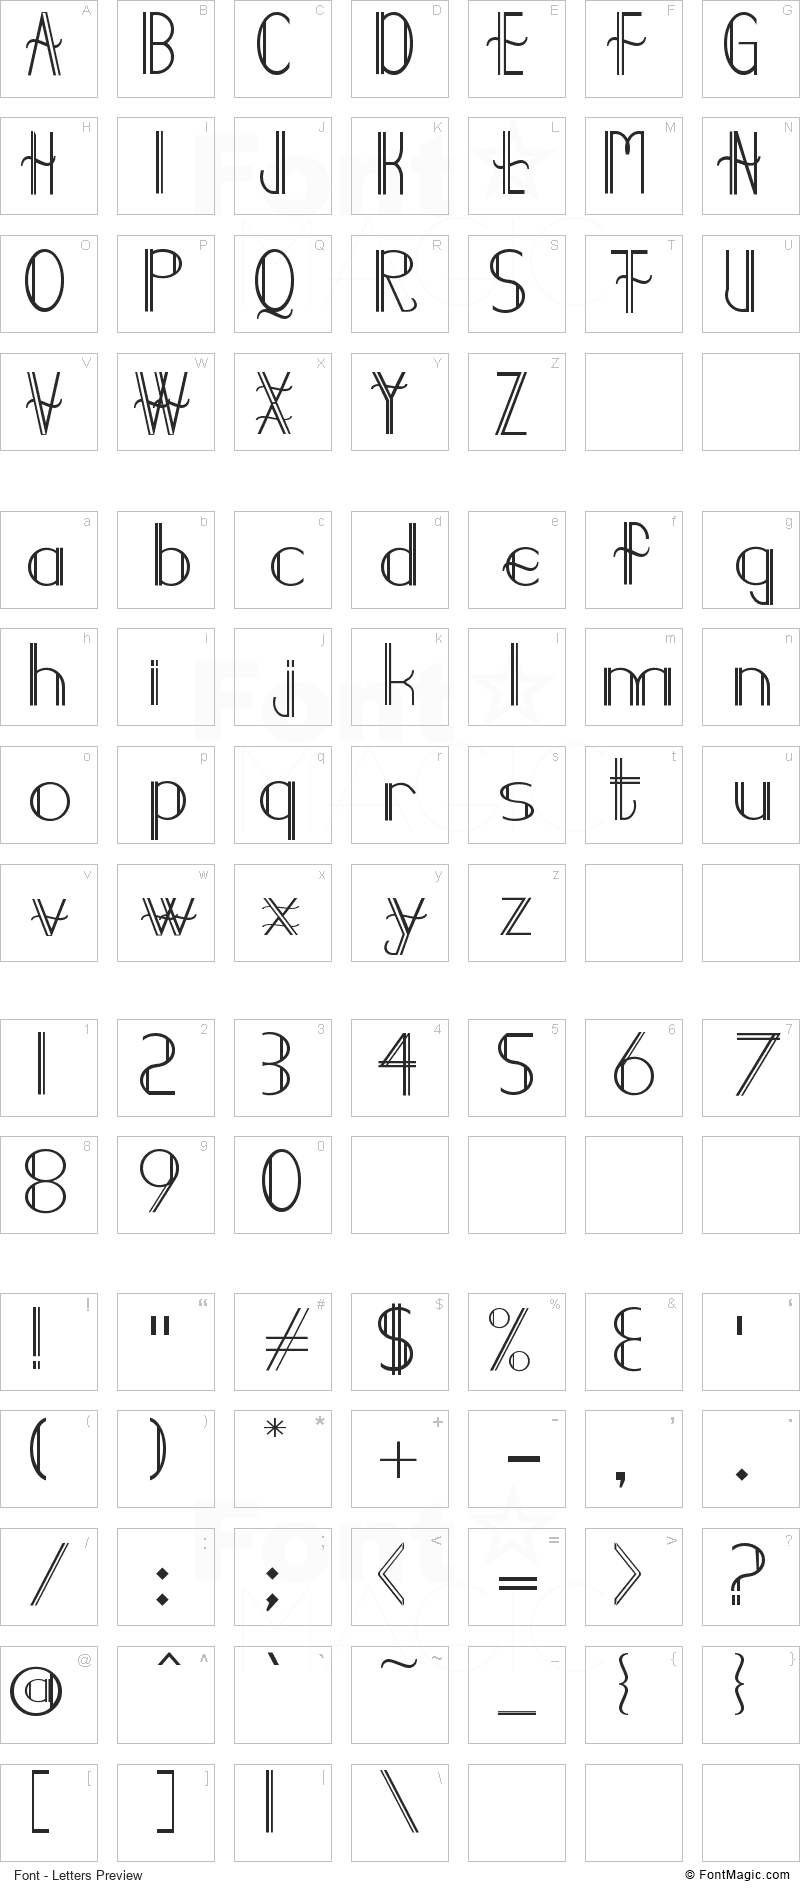 Demodee Font - All Latters Preview Chart